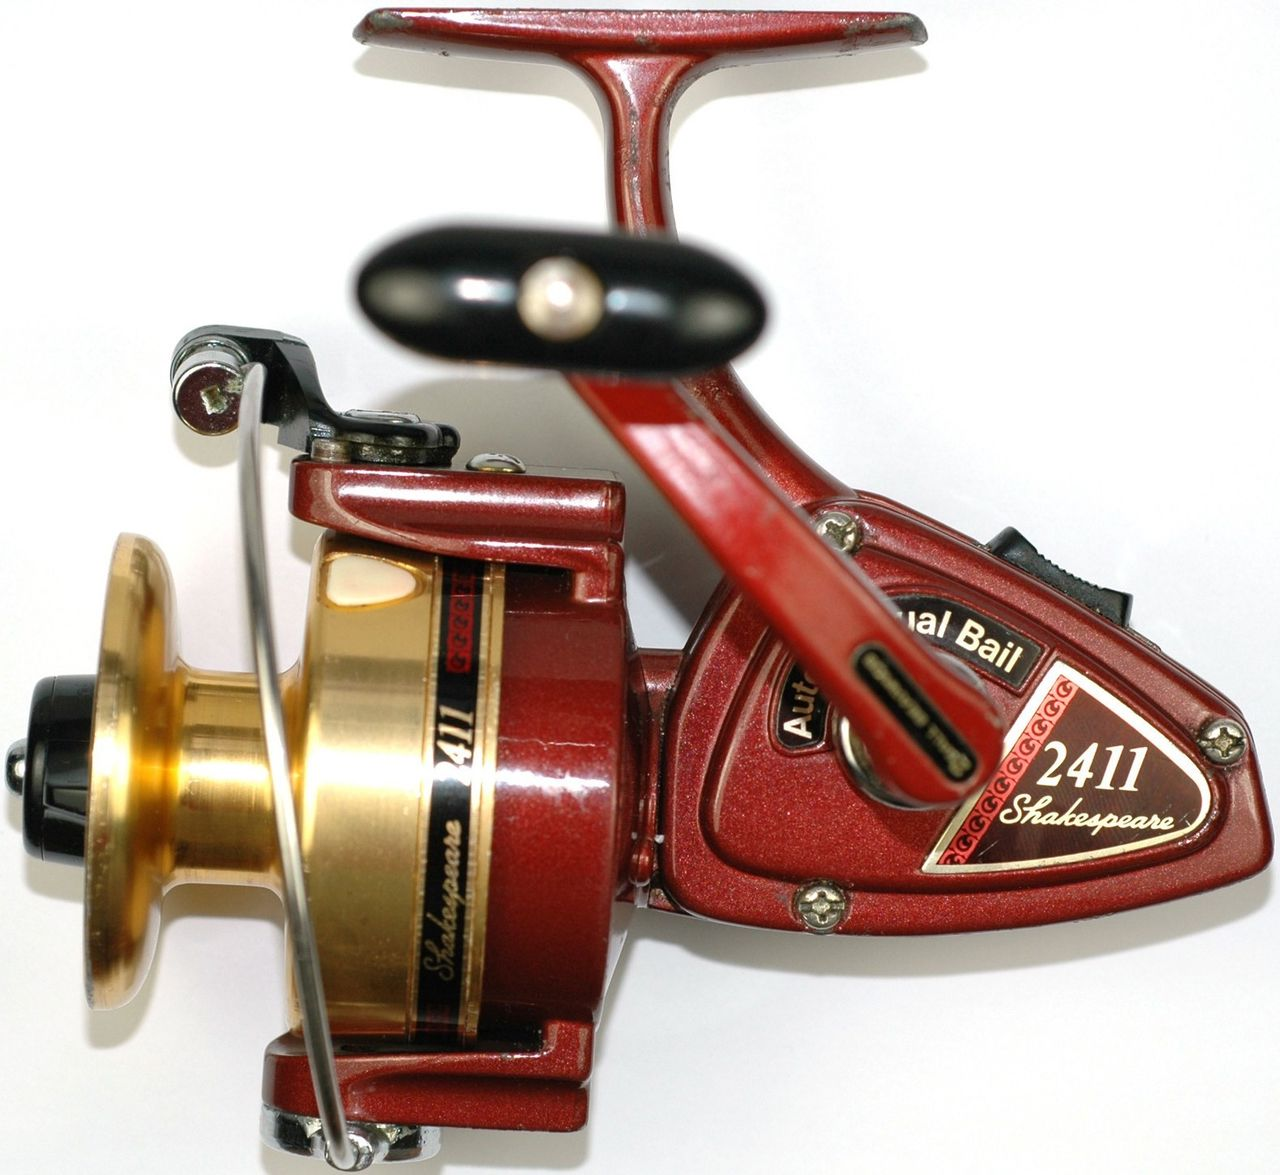 Ready to Fish Vintage Shakespeare Model 2411 Spinning Reel